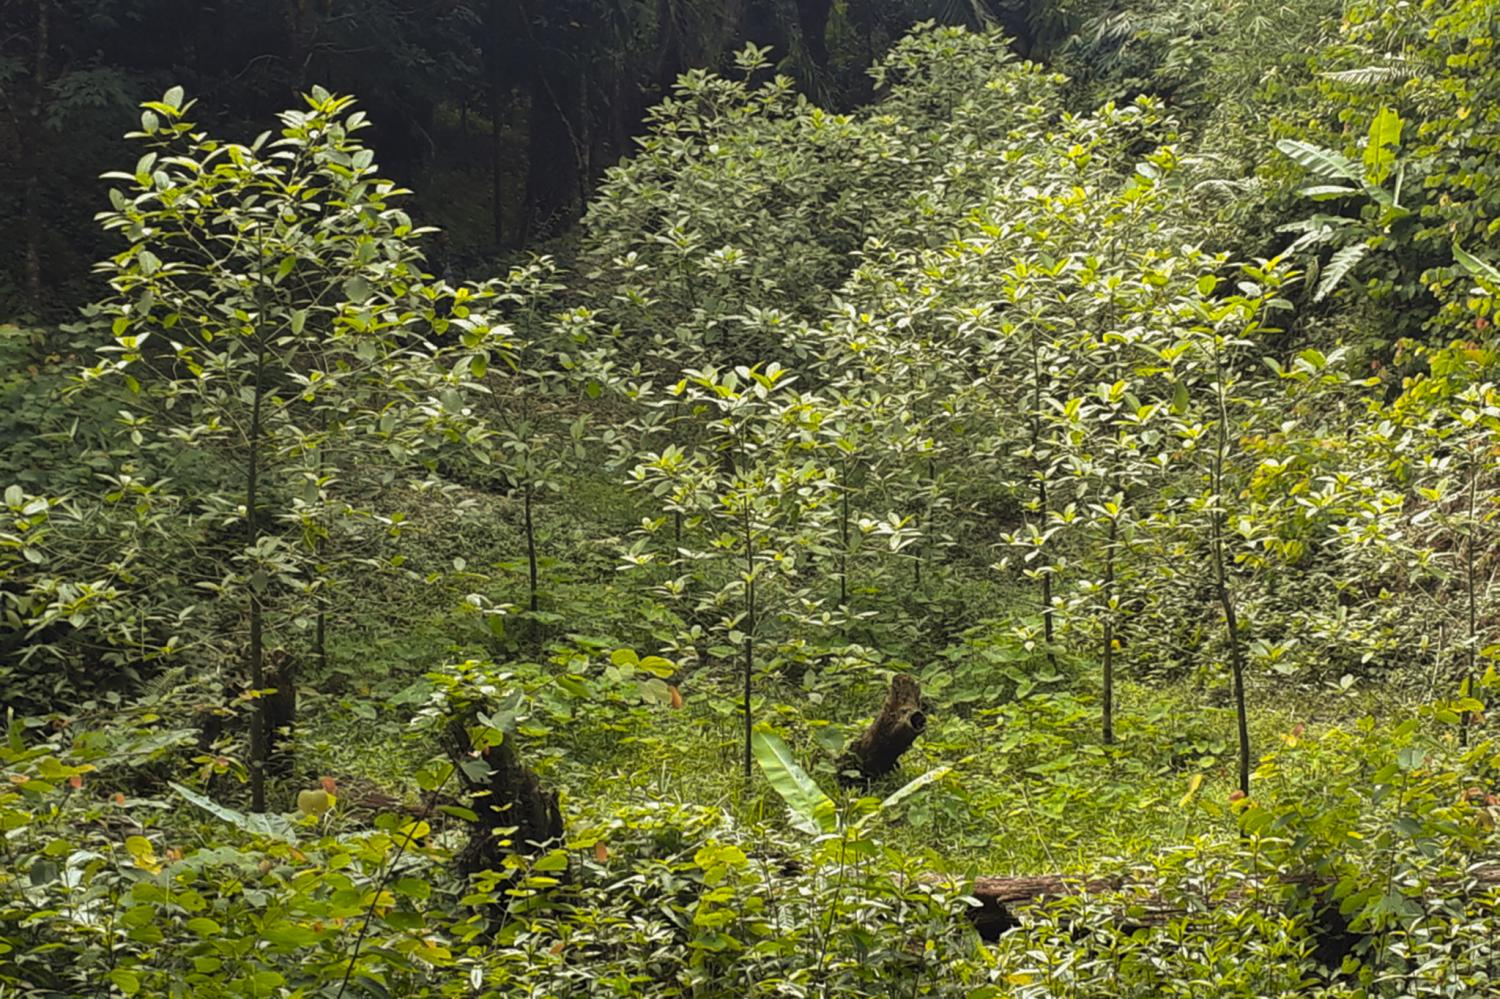 Several young kratom trees grown illegally in a village in Phangnga's Papong district. They were all later destroyed as the plant, pictured in July last year, was then classified as illegal under the narcotics law. Achadtaya Chuenniran